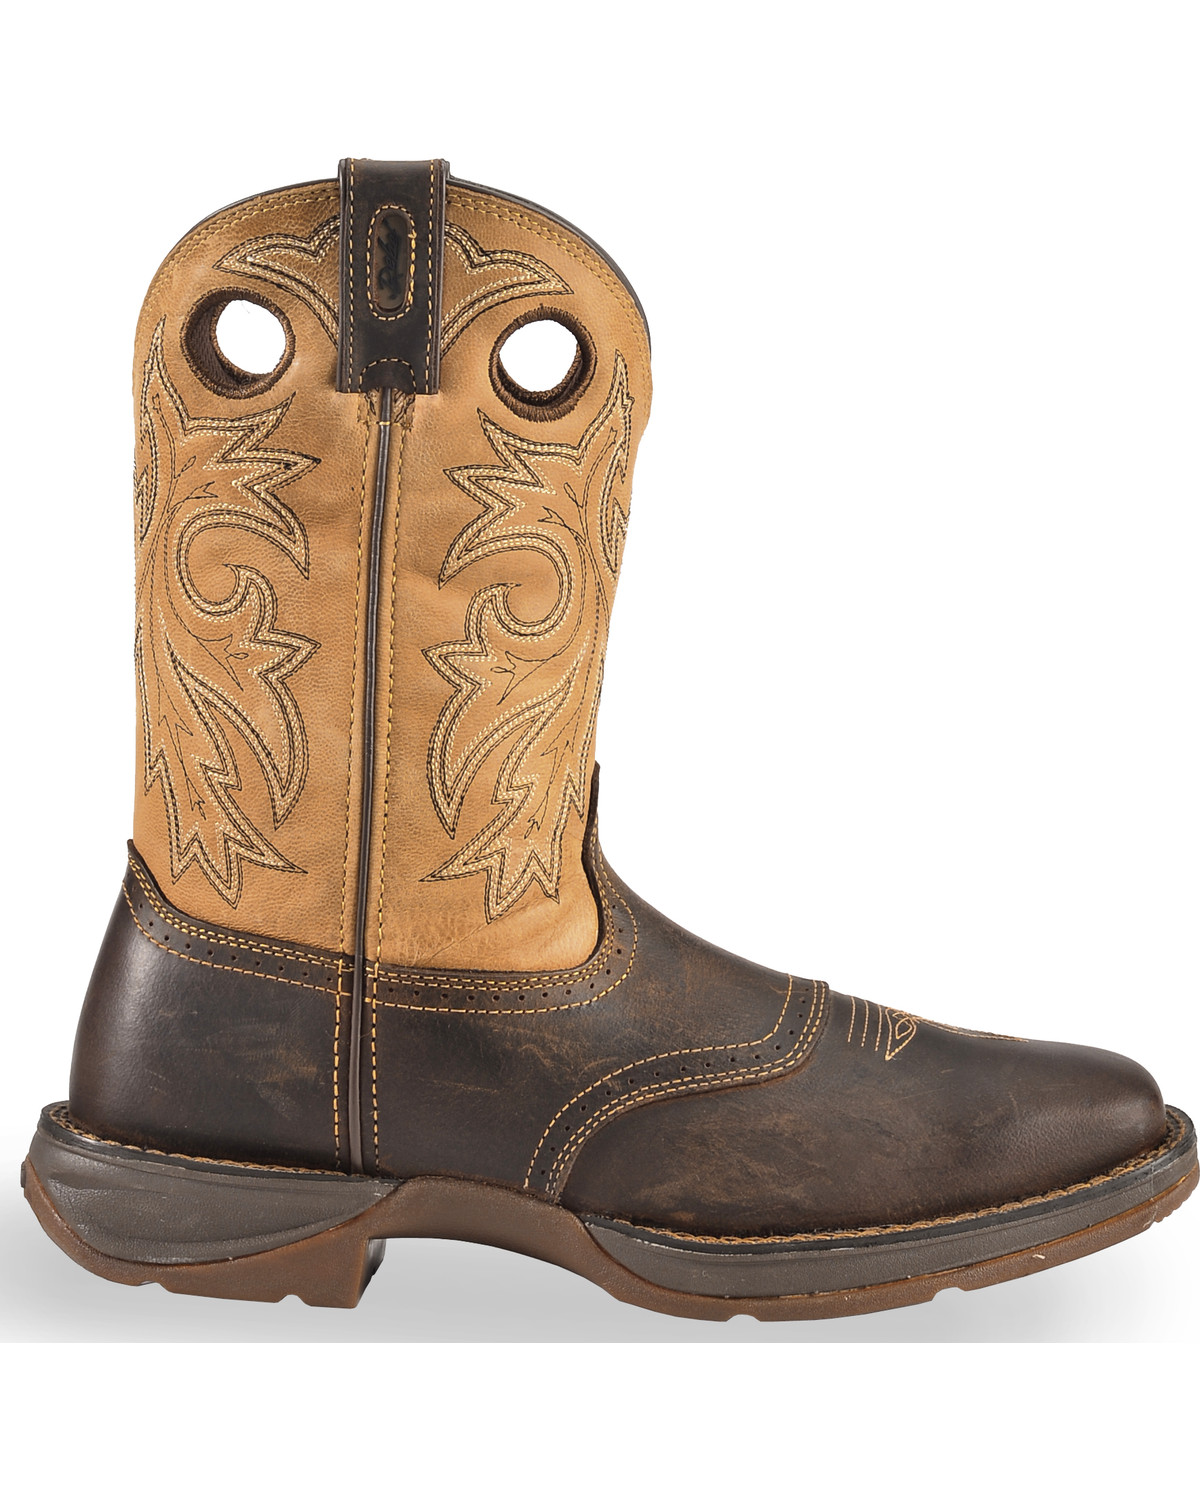 c85e41f78b8 American Flag Boots Rebel by Durango Men s Flag Western Boots DB5554 Source  · Durango Men s Rebel Western Boots Brown hi res